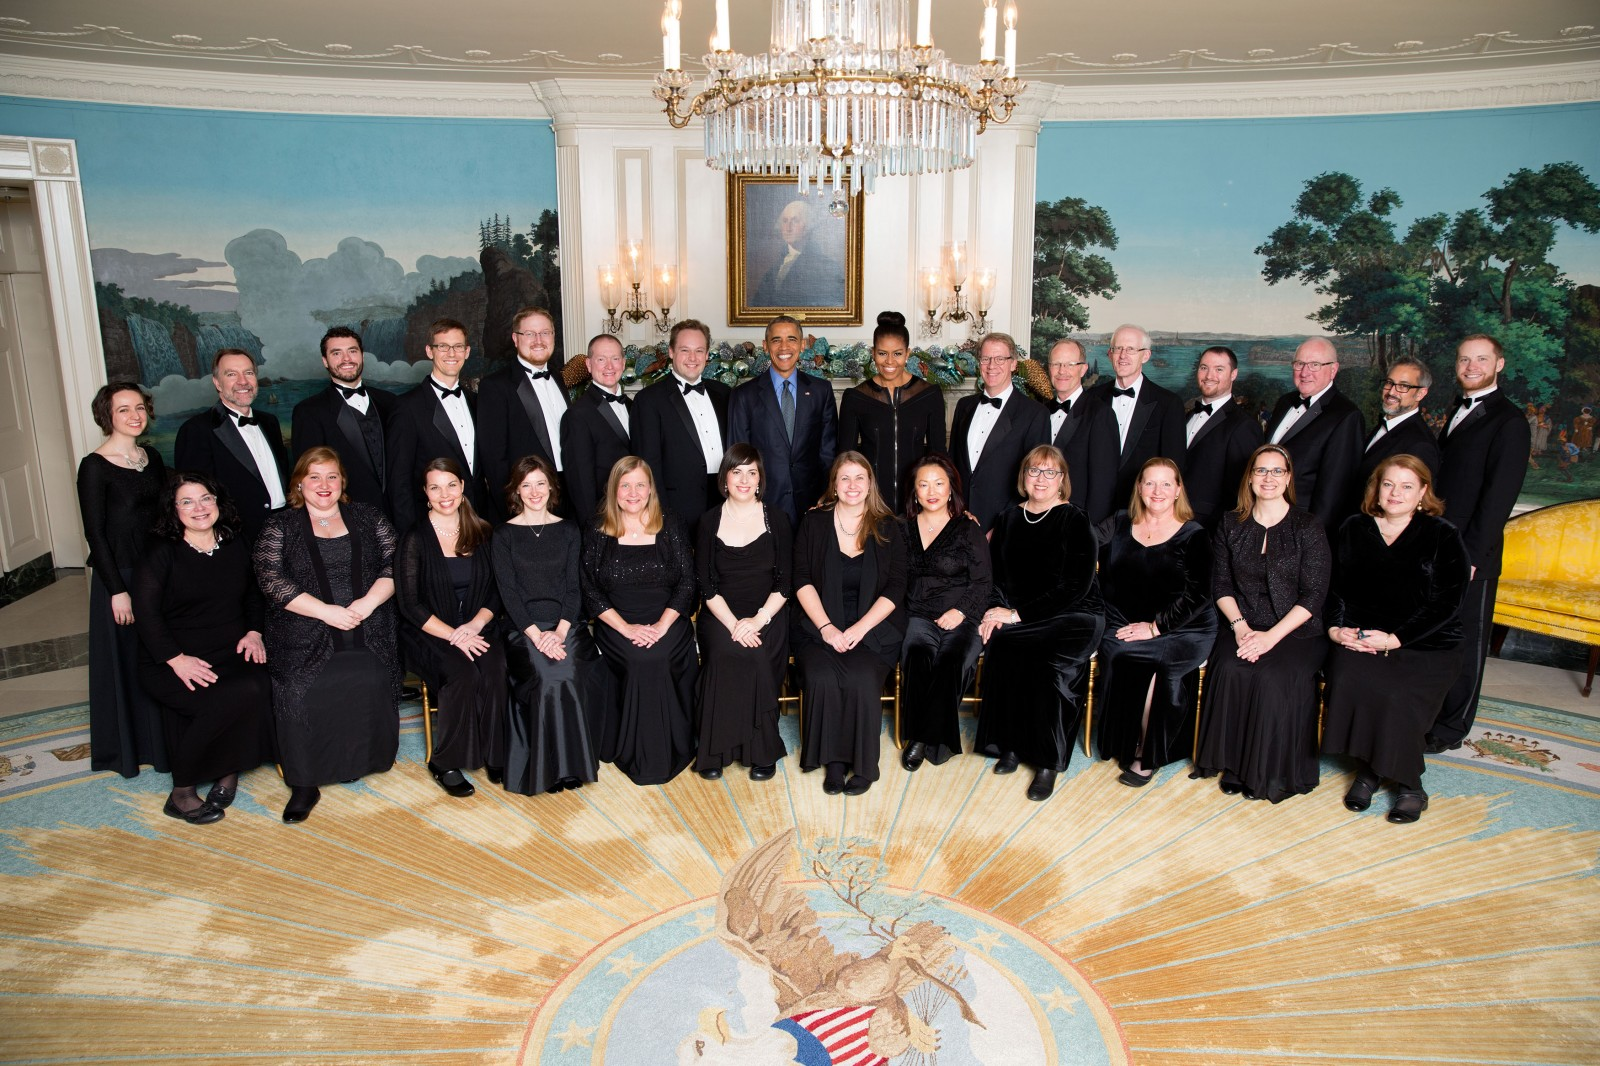 Choral Arts Northwest. CANW with President Barack Obama after a command White House performance, Dec 18, 2015.